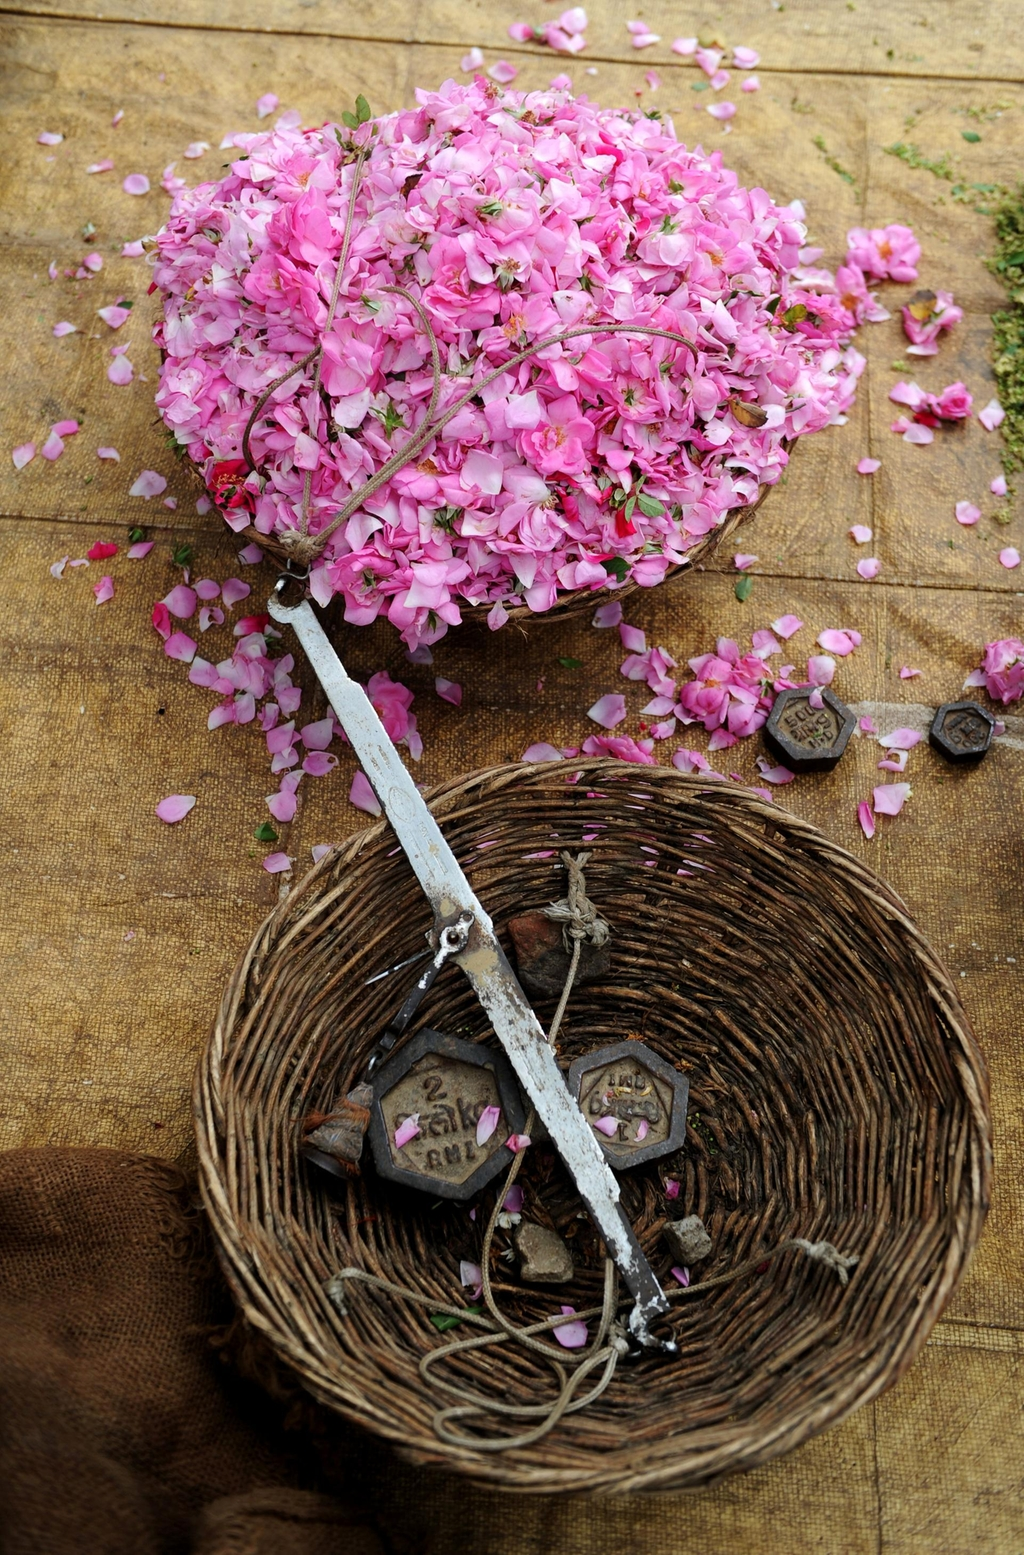 Making Rose Attar - Ruh Gulab Attar